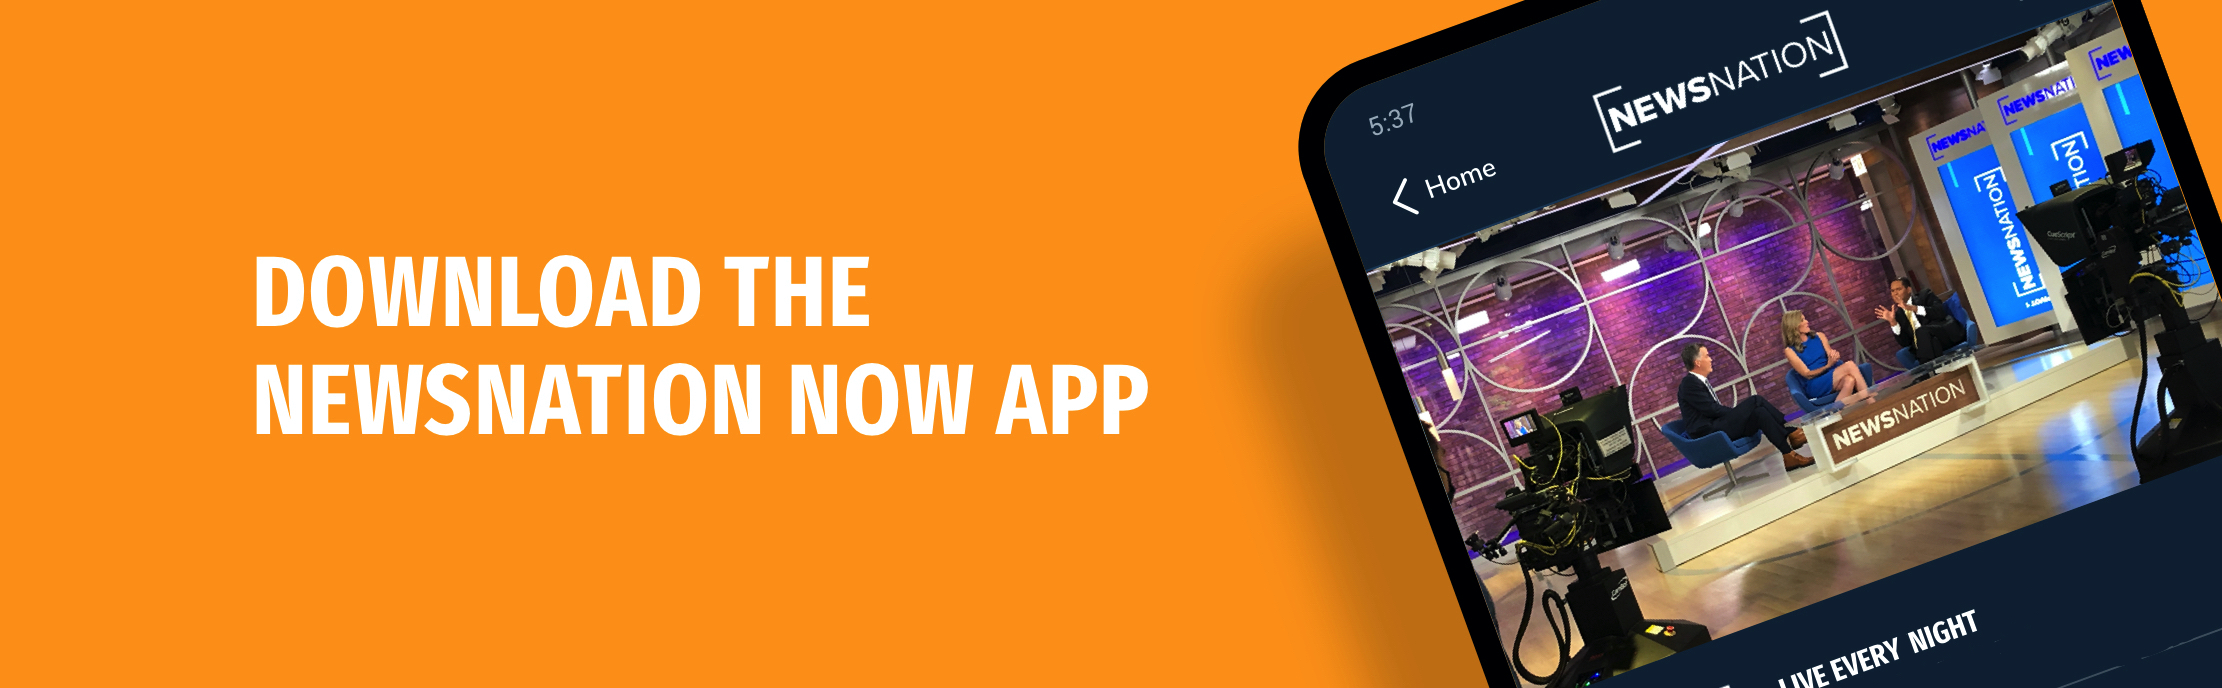 Download the NewsNation Now Apps